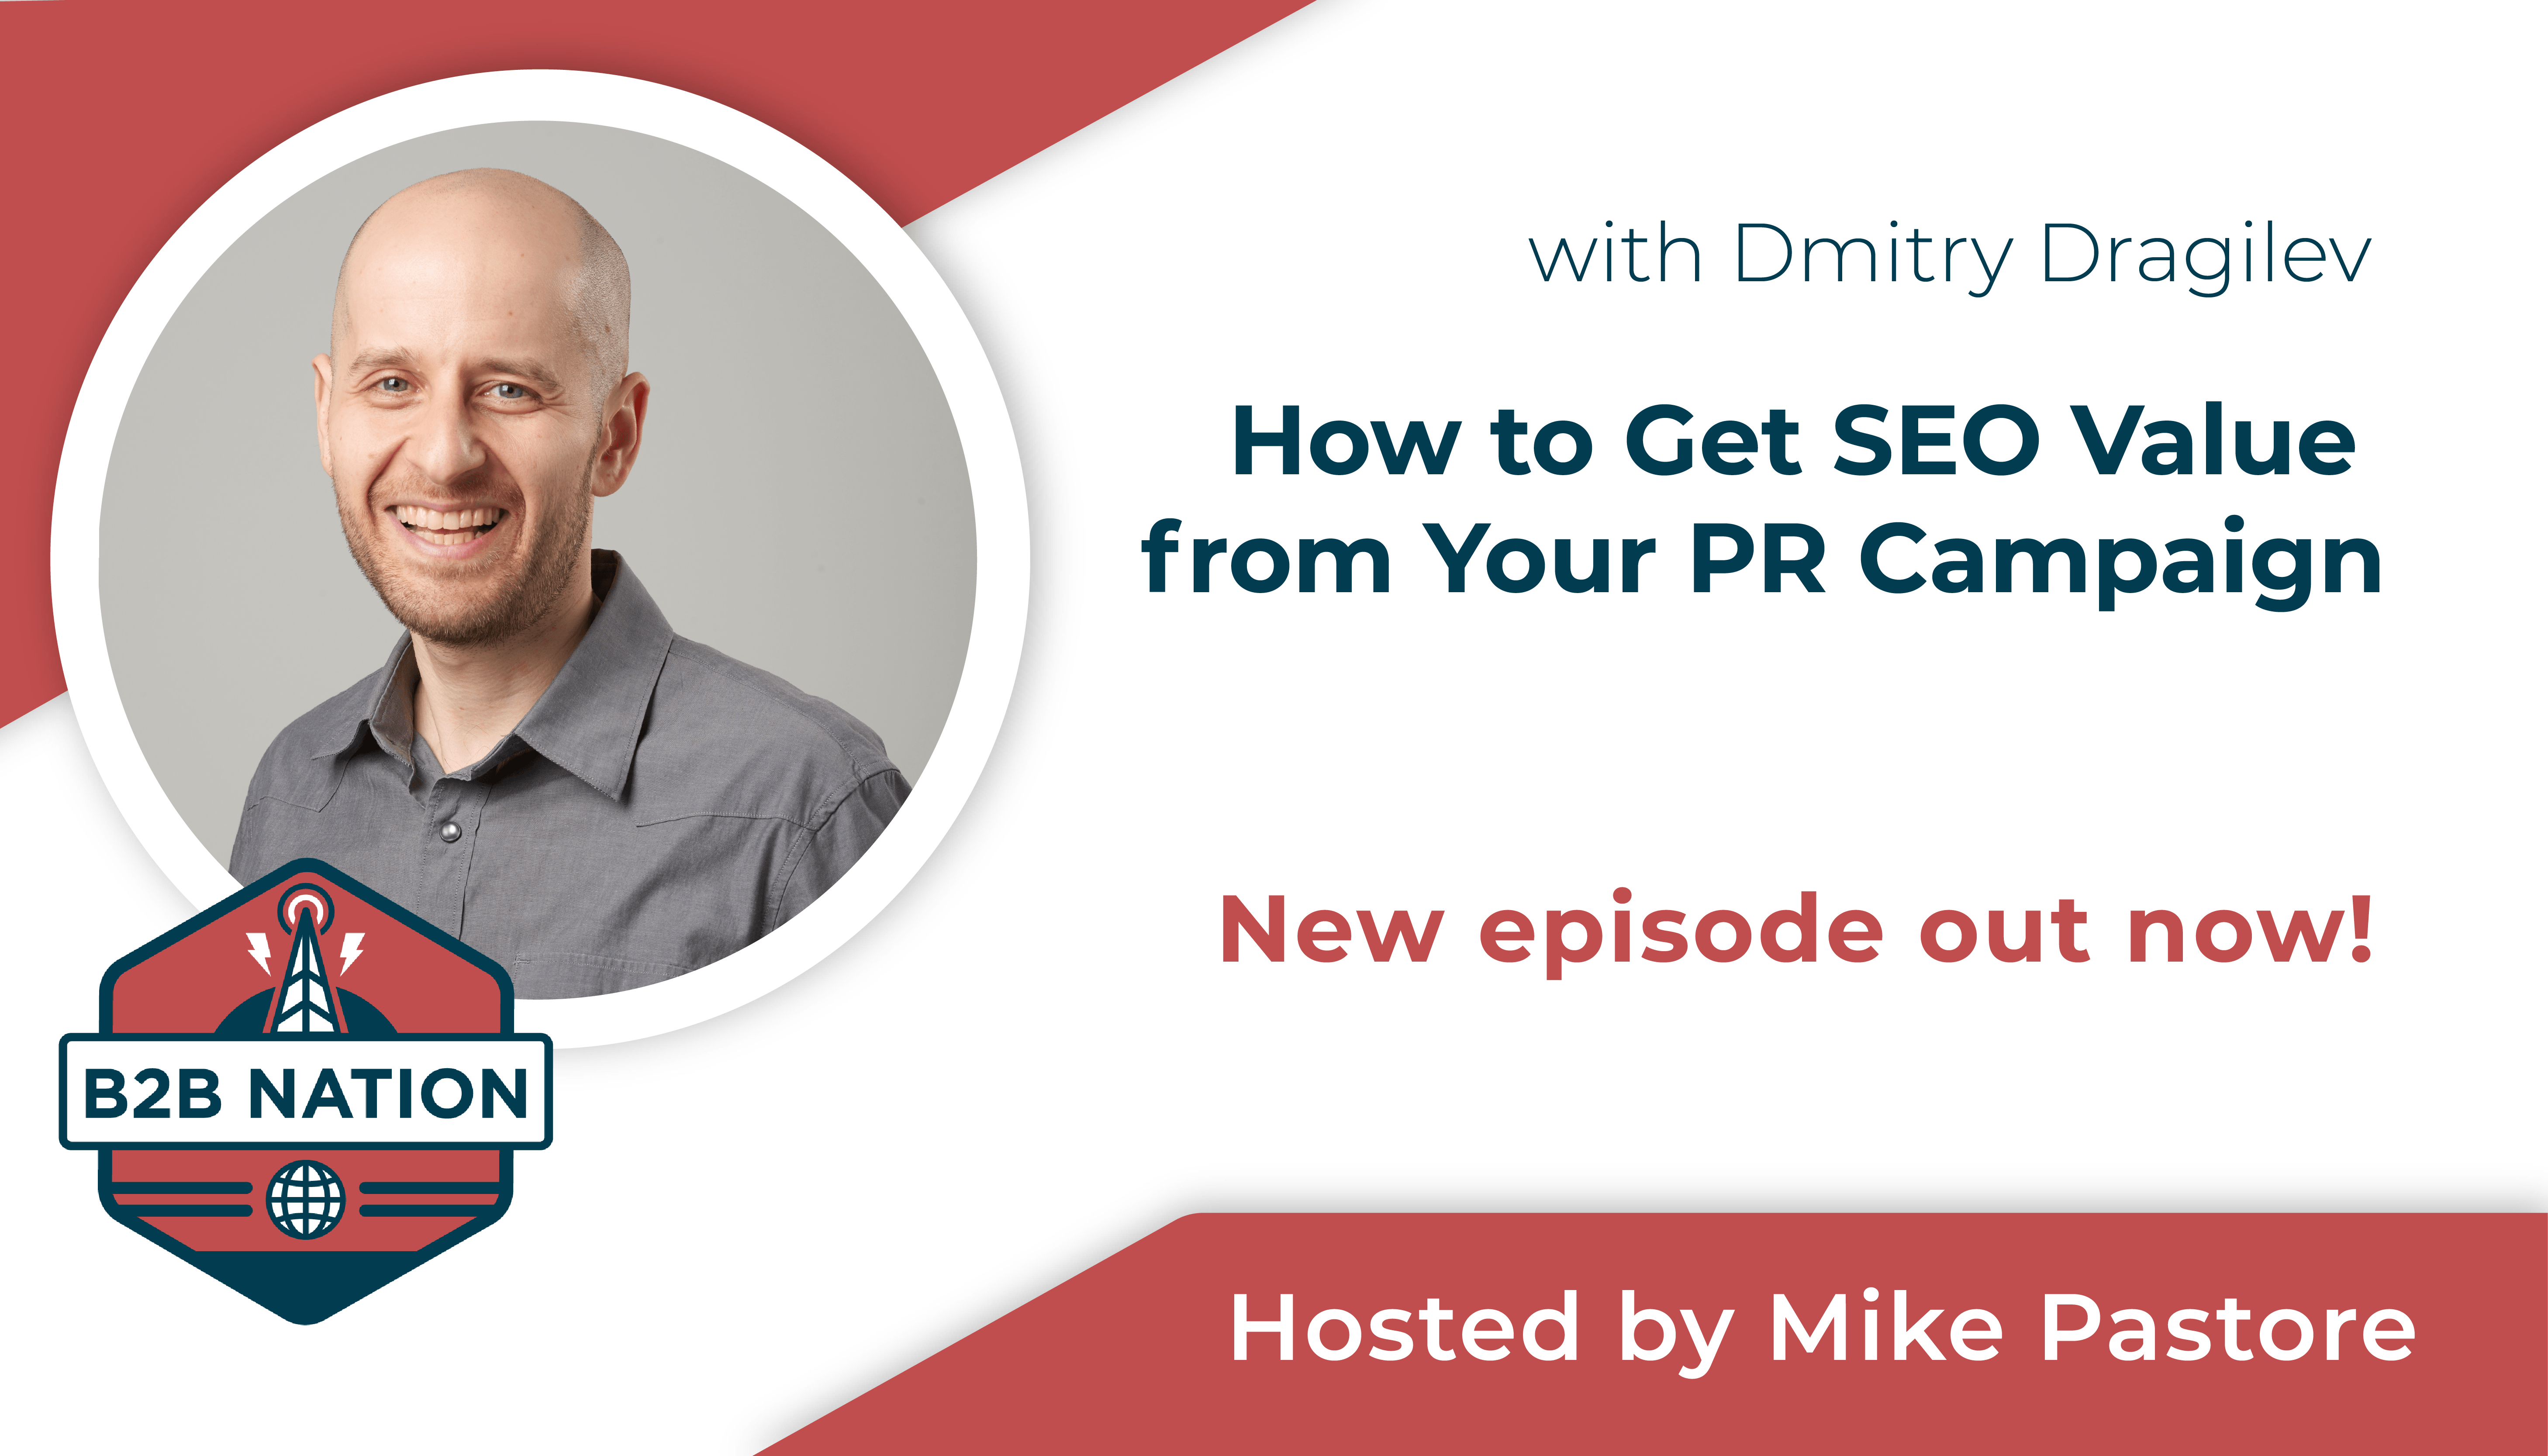 How to Get SEO Value from you PR Campaign with Dmitry Dragilev.